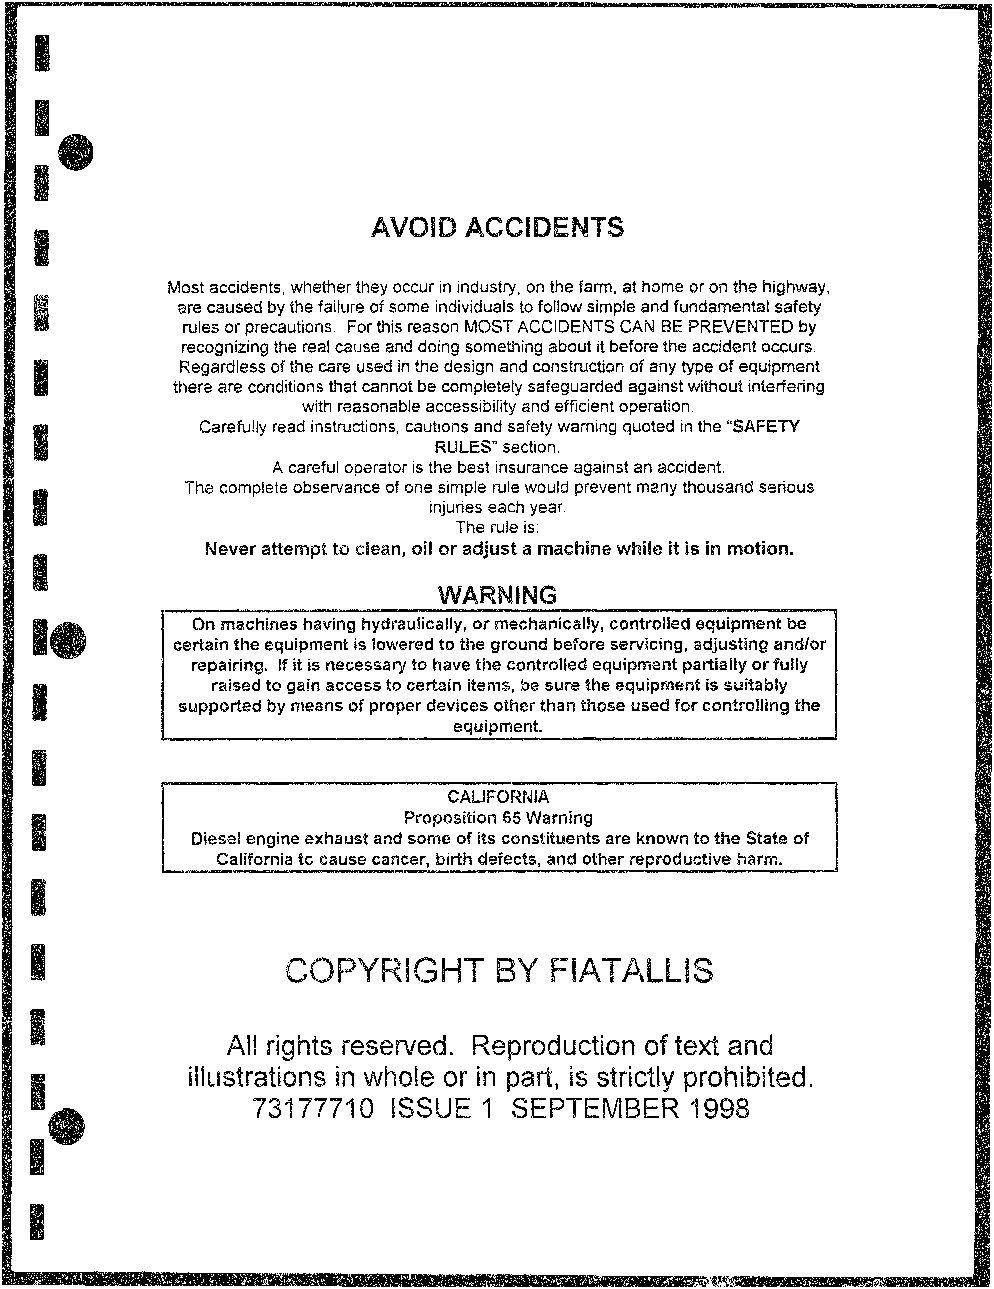 Fiat Allis Fx350lc 7317771050 Excavator Parts Manual Pdf Download Service Manual Repair Manual Pdf Download Repair Manuals Excavator Parts Excavator